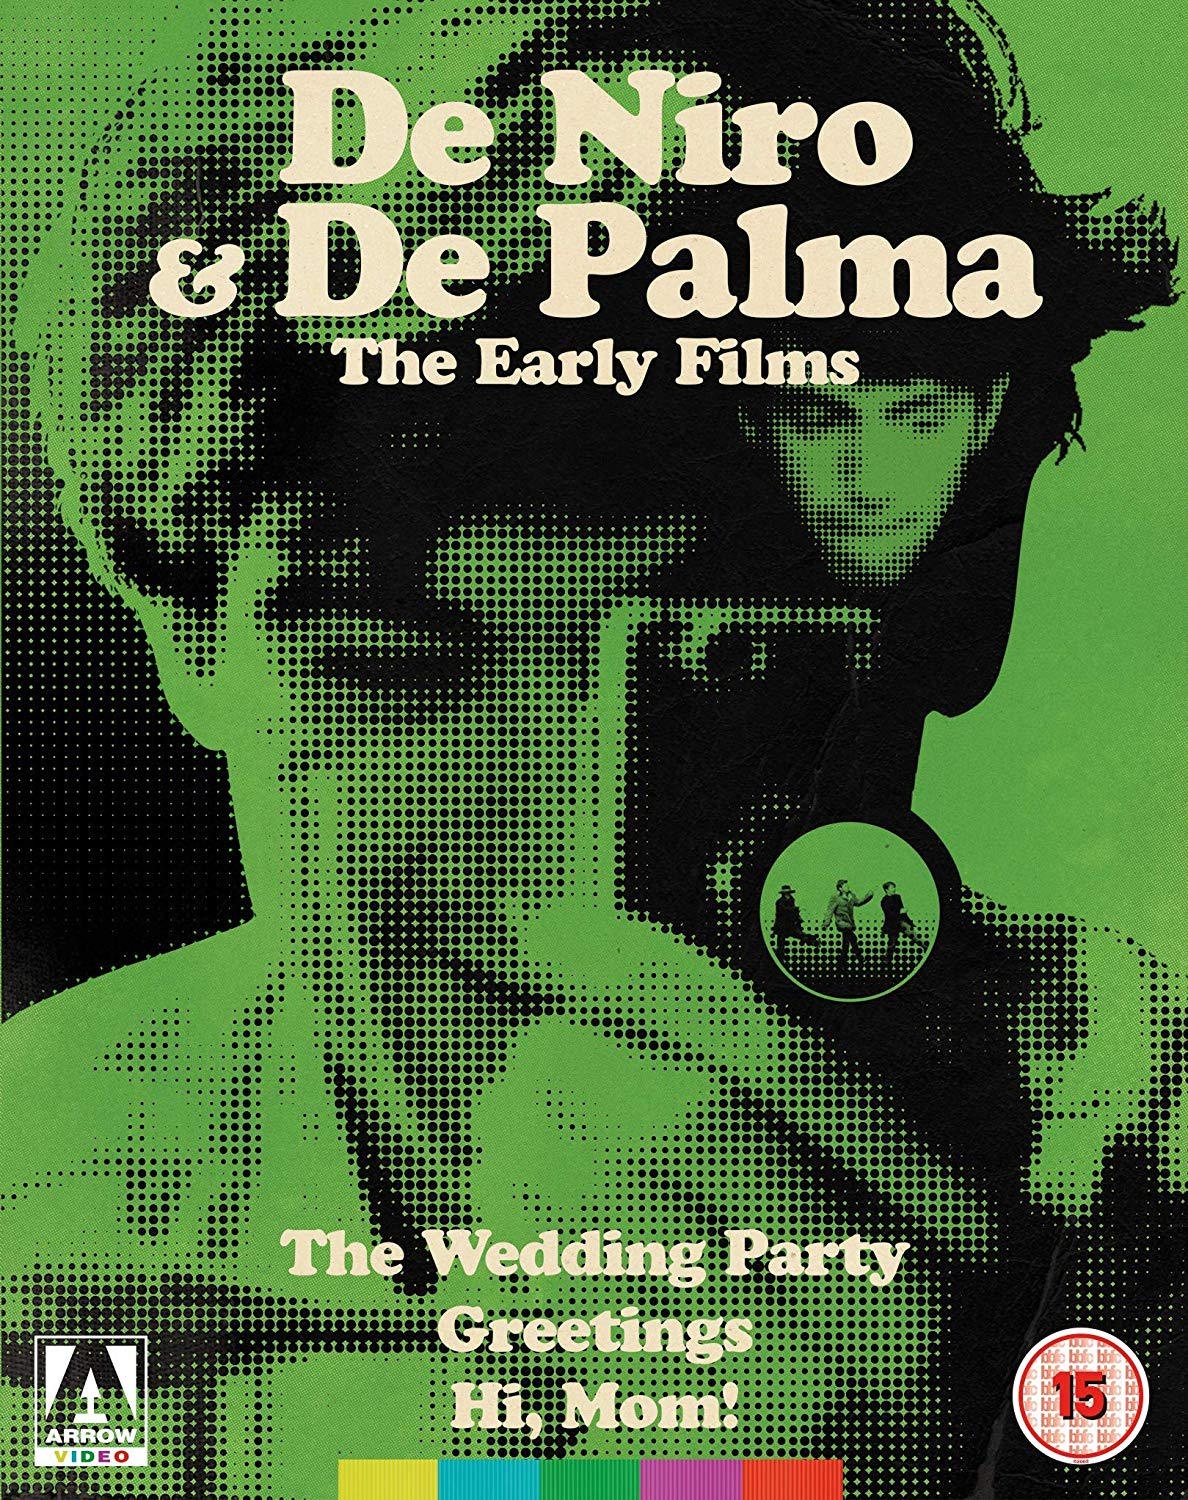 Buy De Palma & De Niro: The Early Films (Limited Edition Blu-ray Box Set)